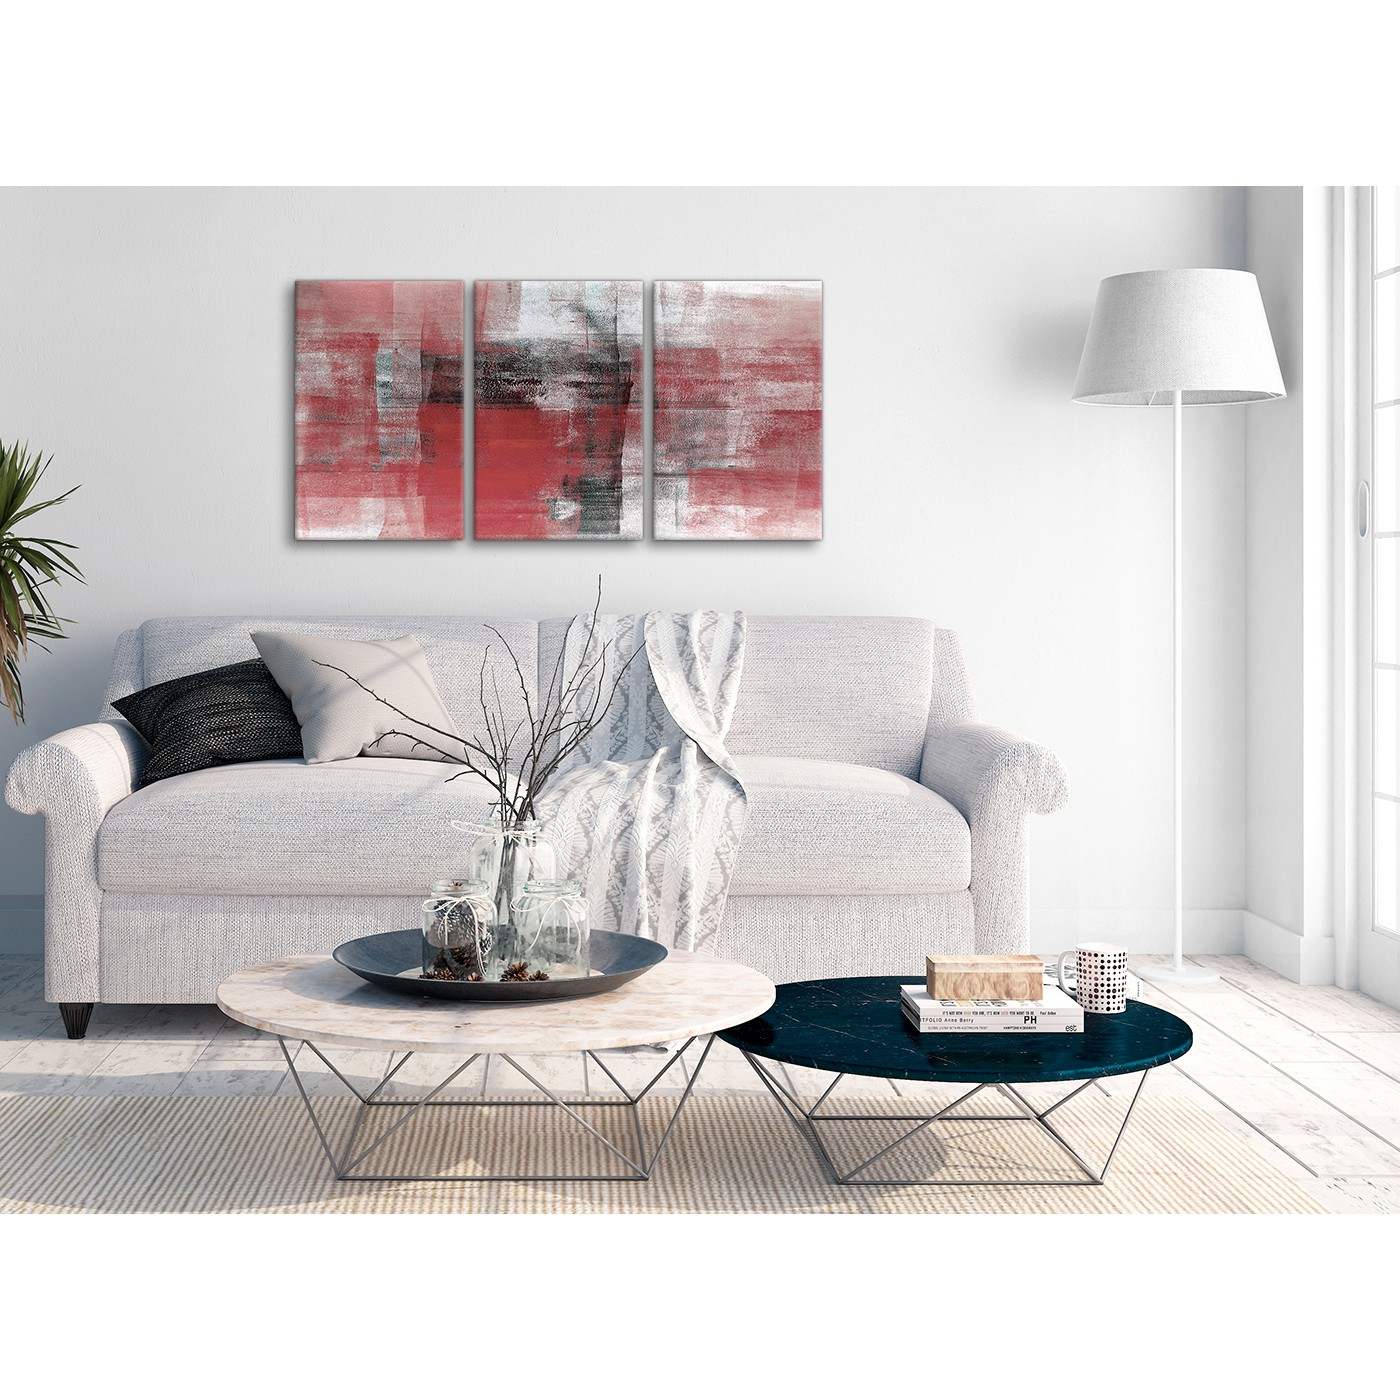 Display Gallery Item 3; Multiple 3 Panel Red Black White Painting Living  Room Canvas Pictures Accessories   Abstract 3397   Display Gallery Item 4  ...